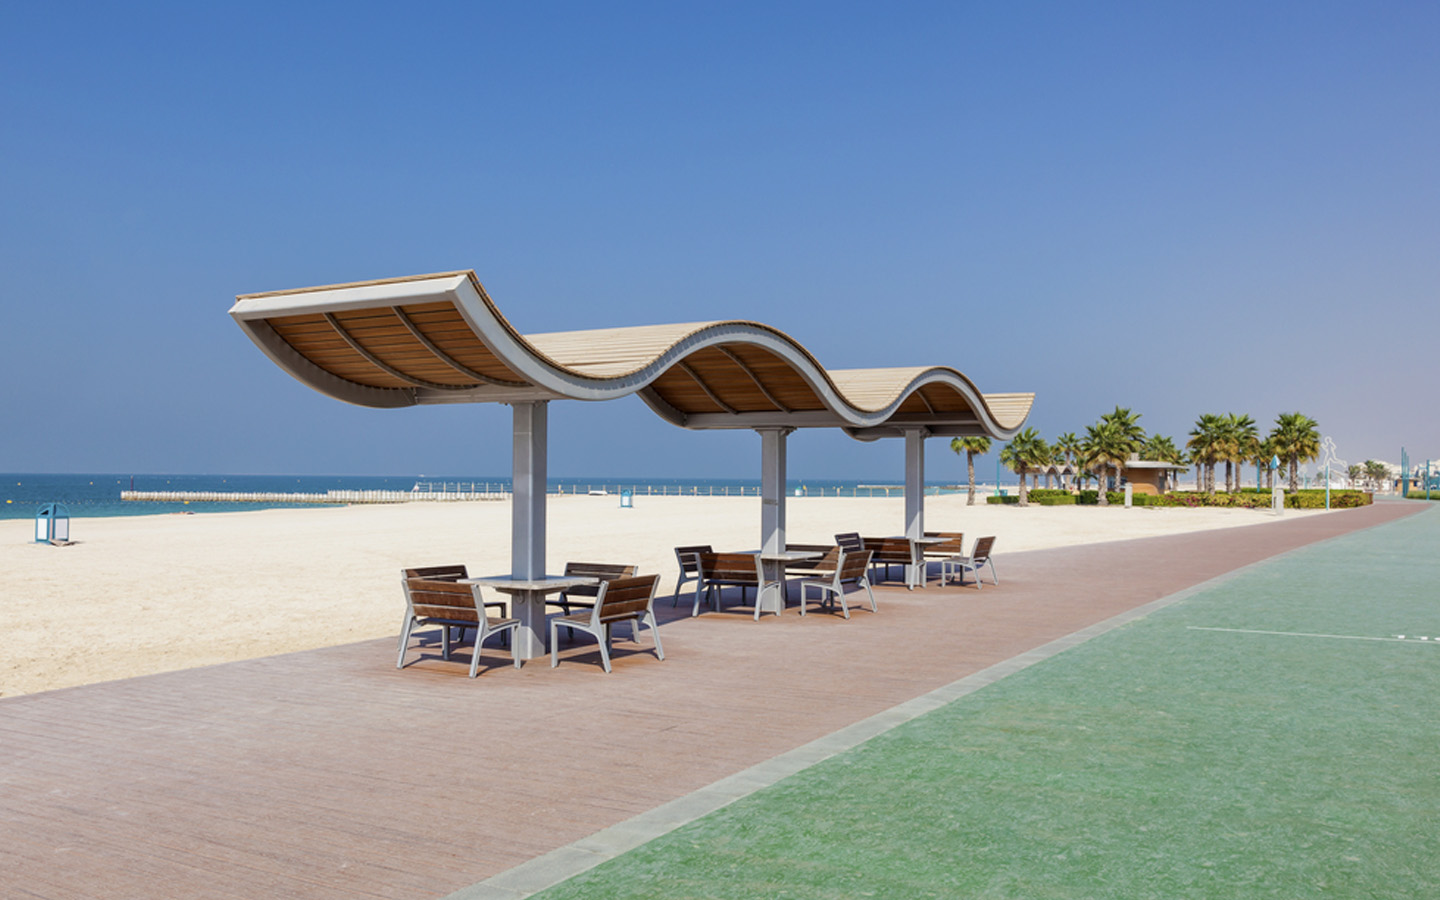 Running track, pavement for strolling and seating area at Sunset Beach Dubai